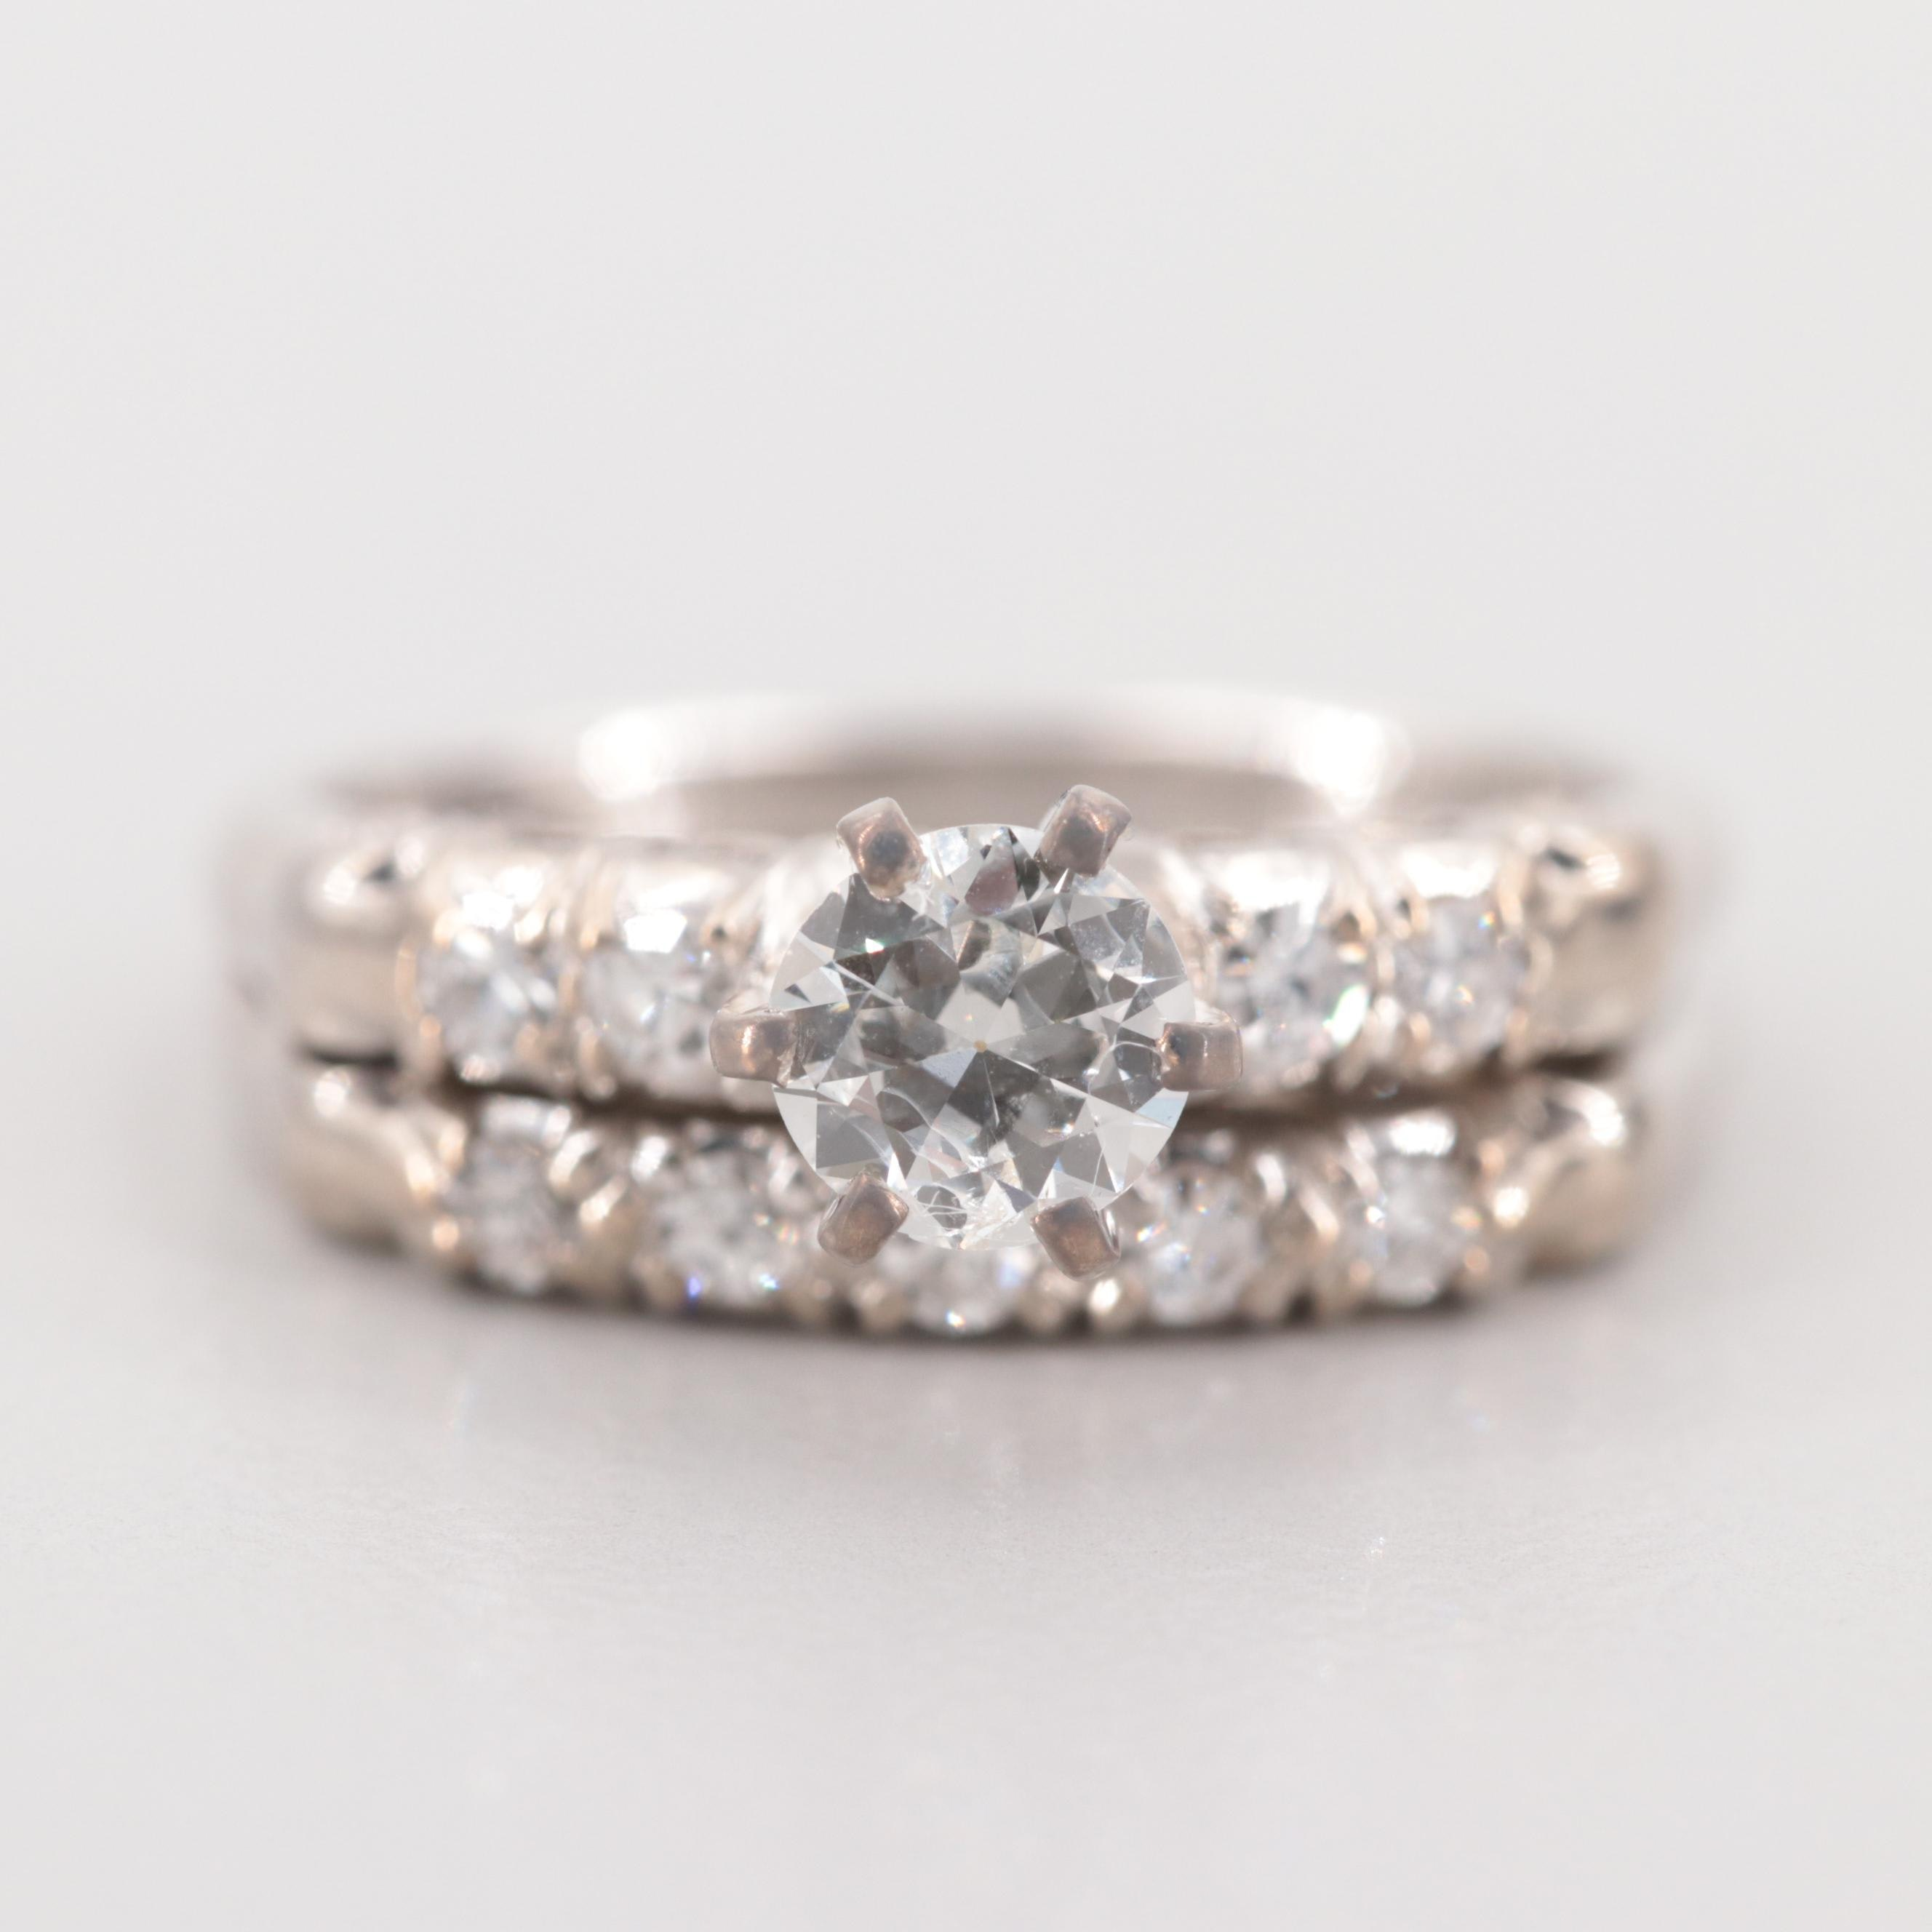 18K White Gold Diamond Ring Set